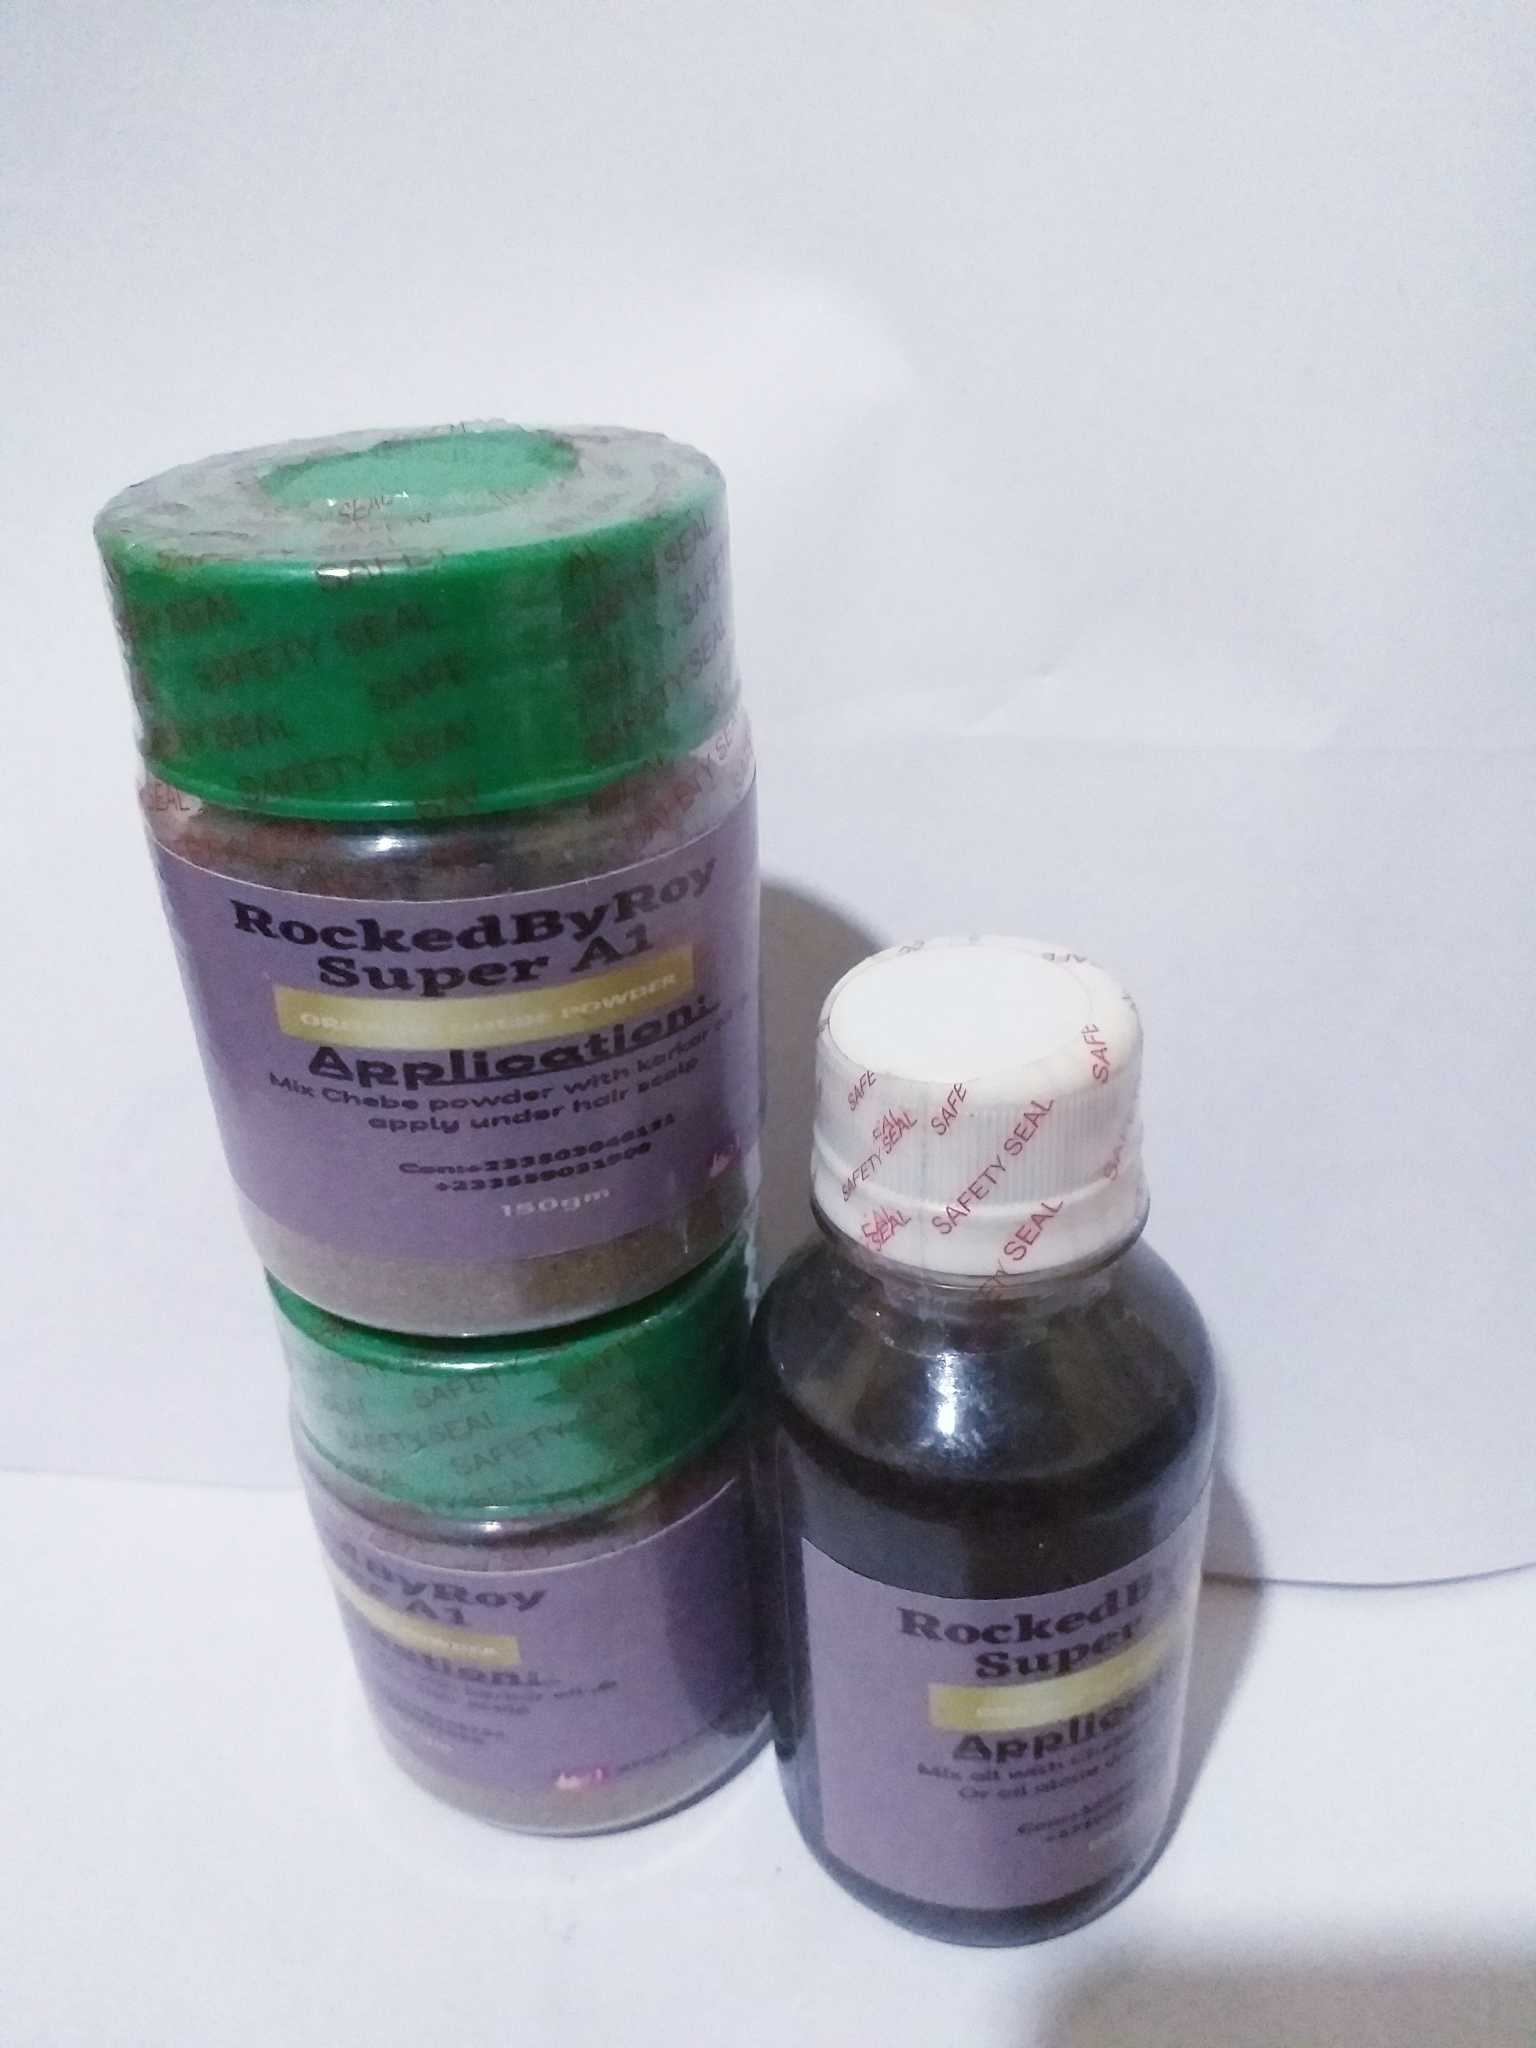 where to buy chebe powder and karkar oil in accra